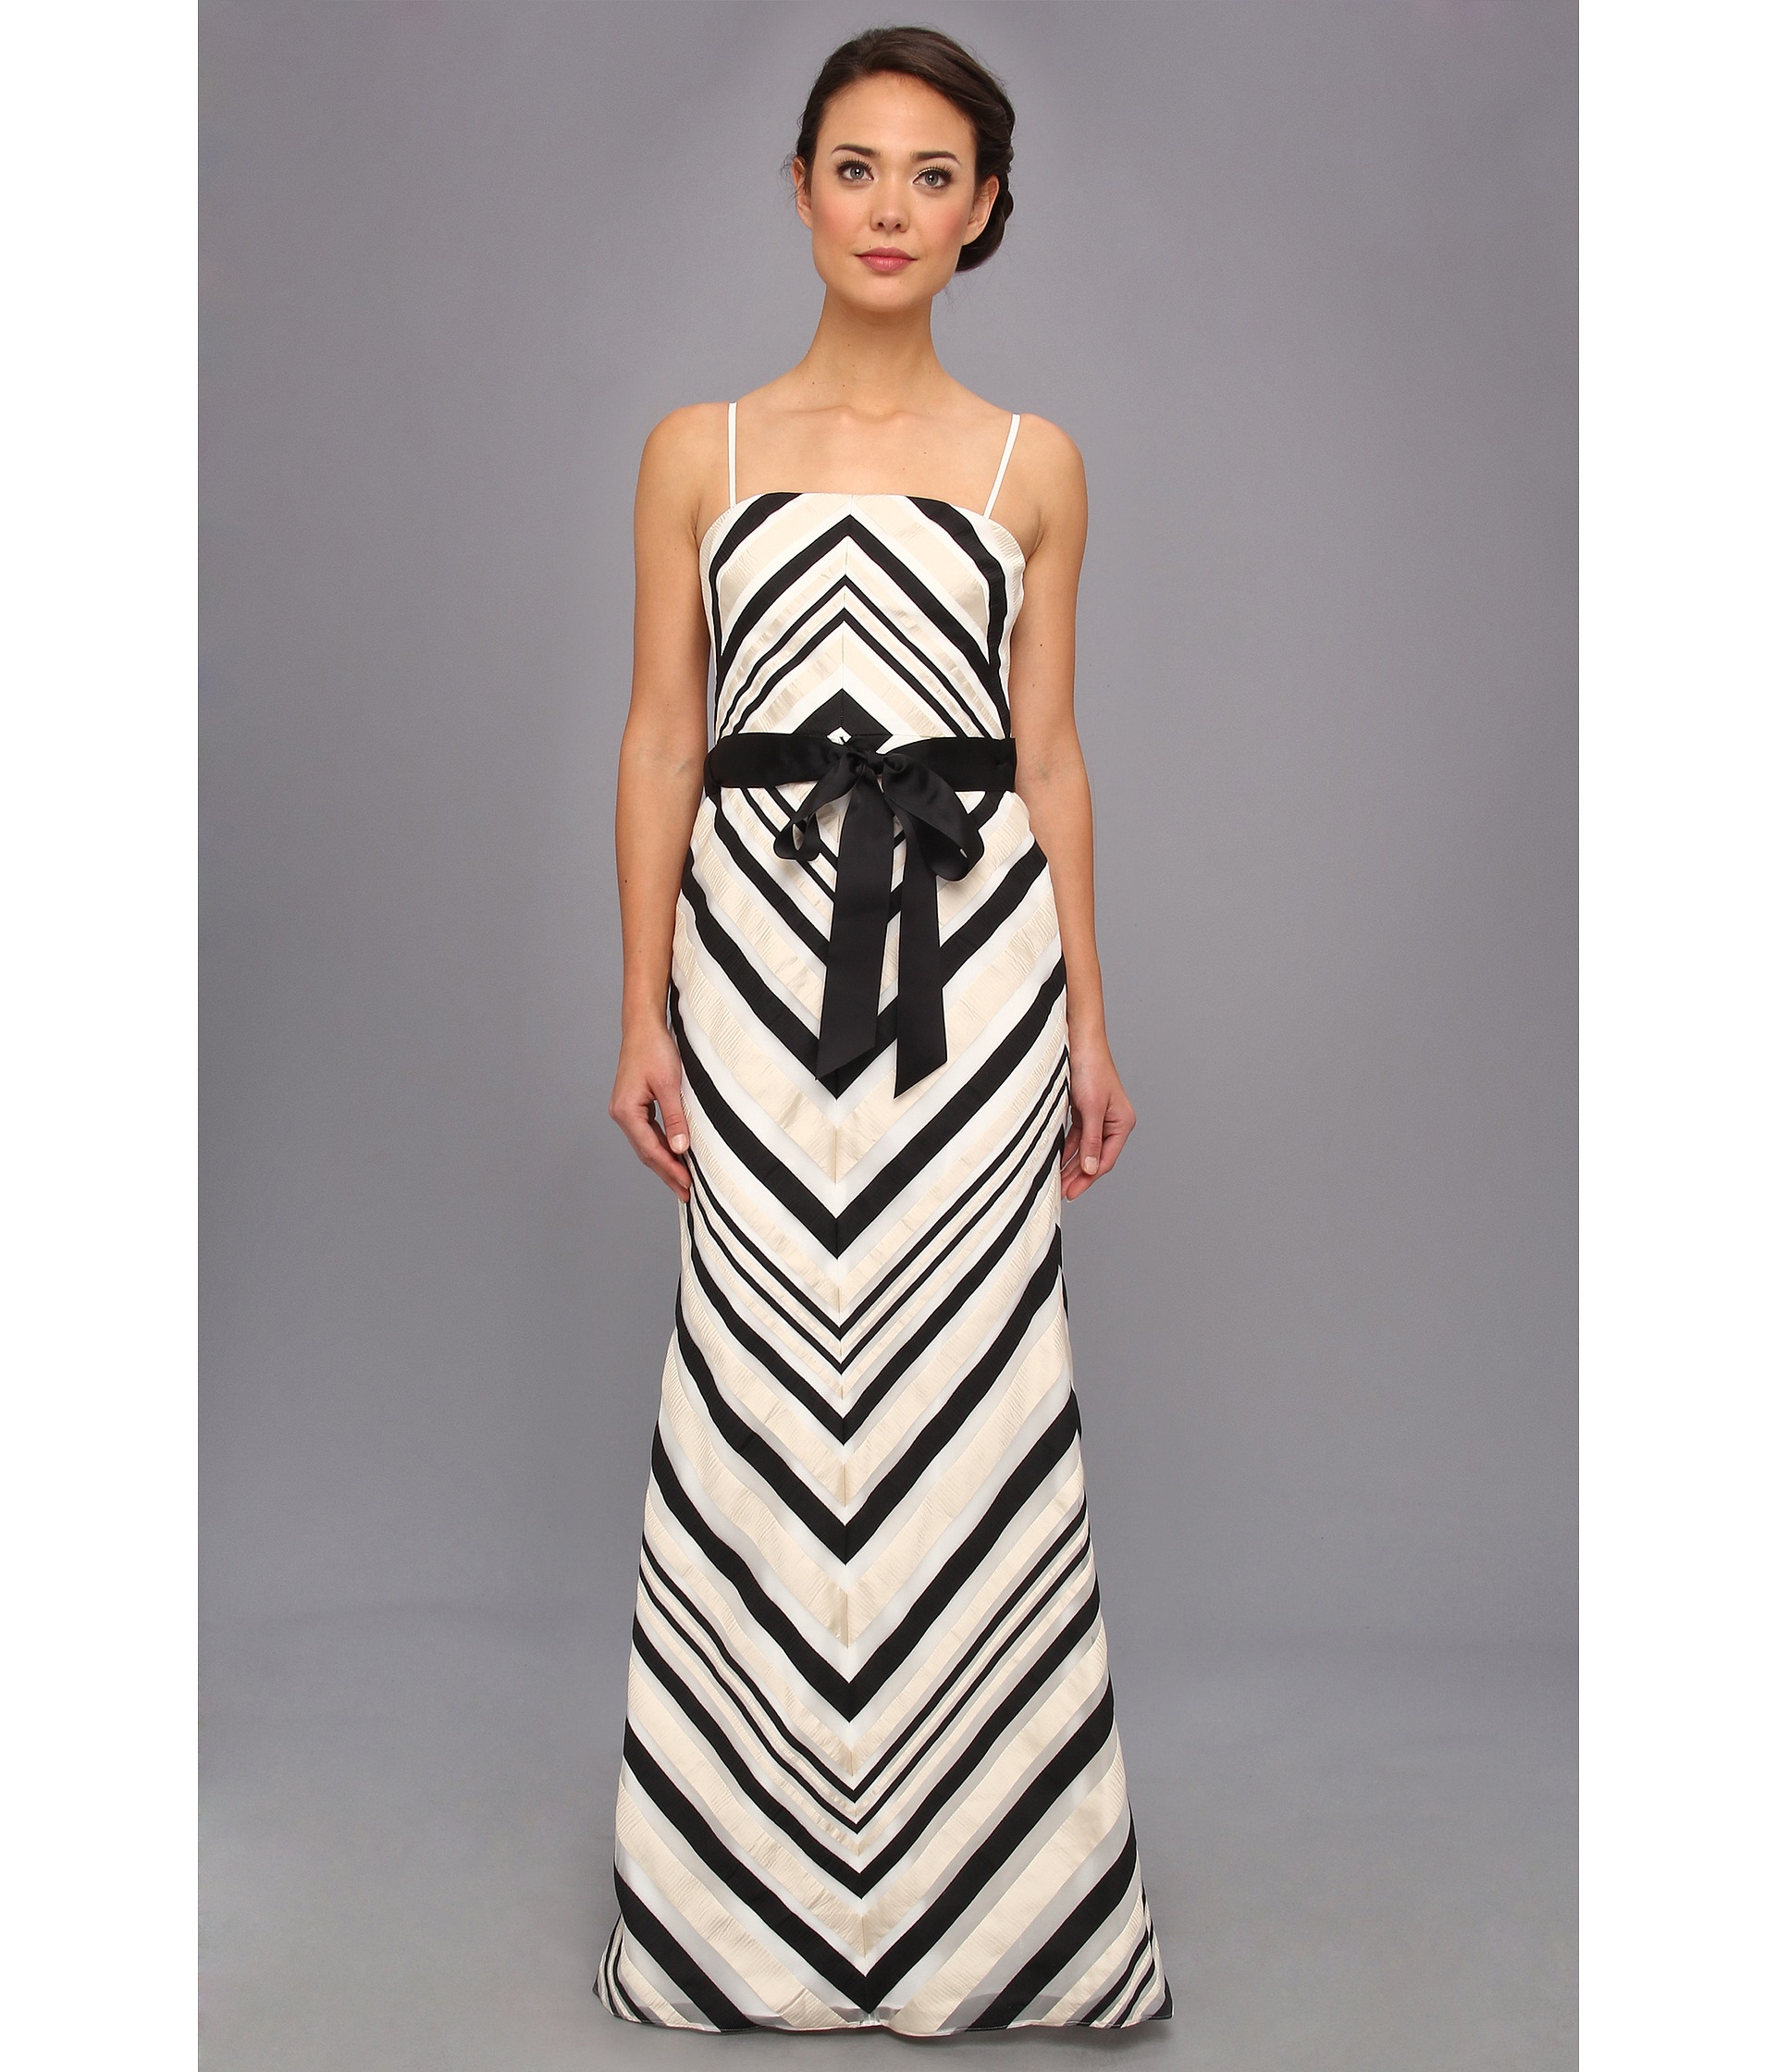 Lyst - Adrianna Papell Ribbon Striped Ball Gown W Sash in Black